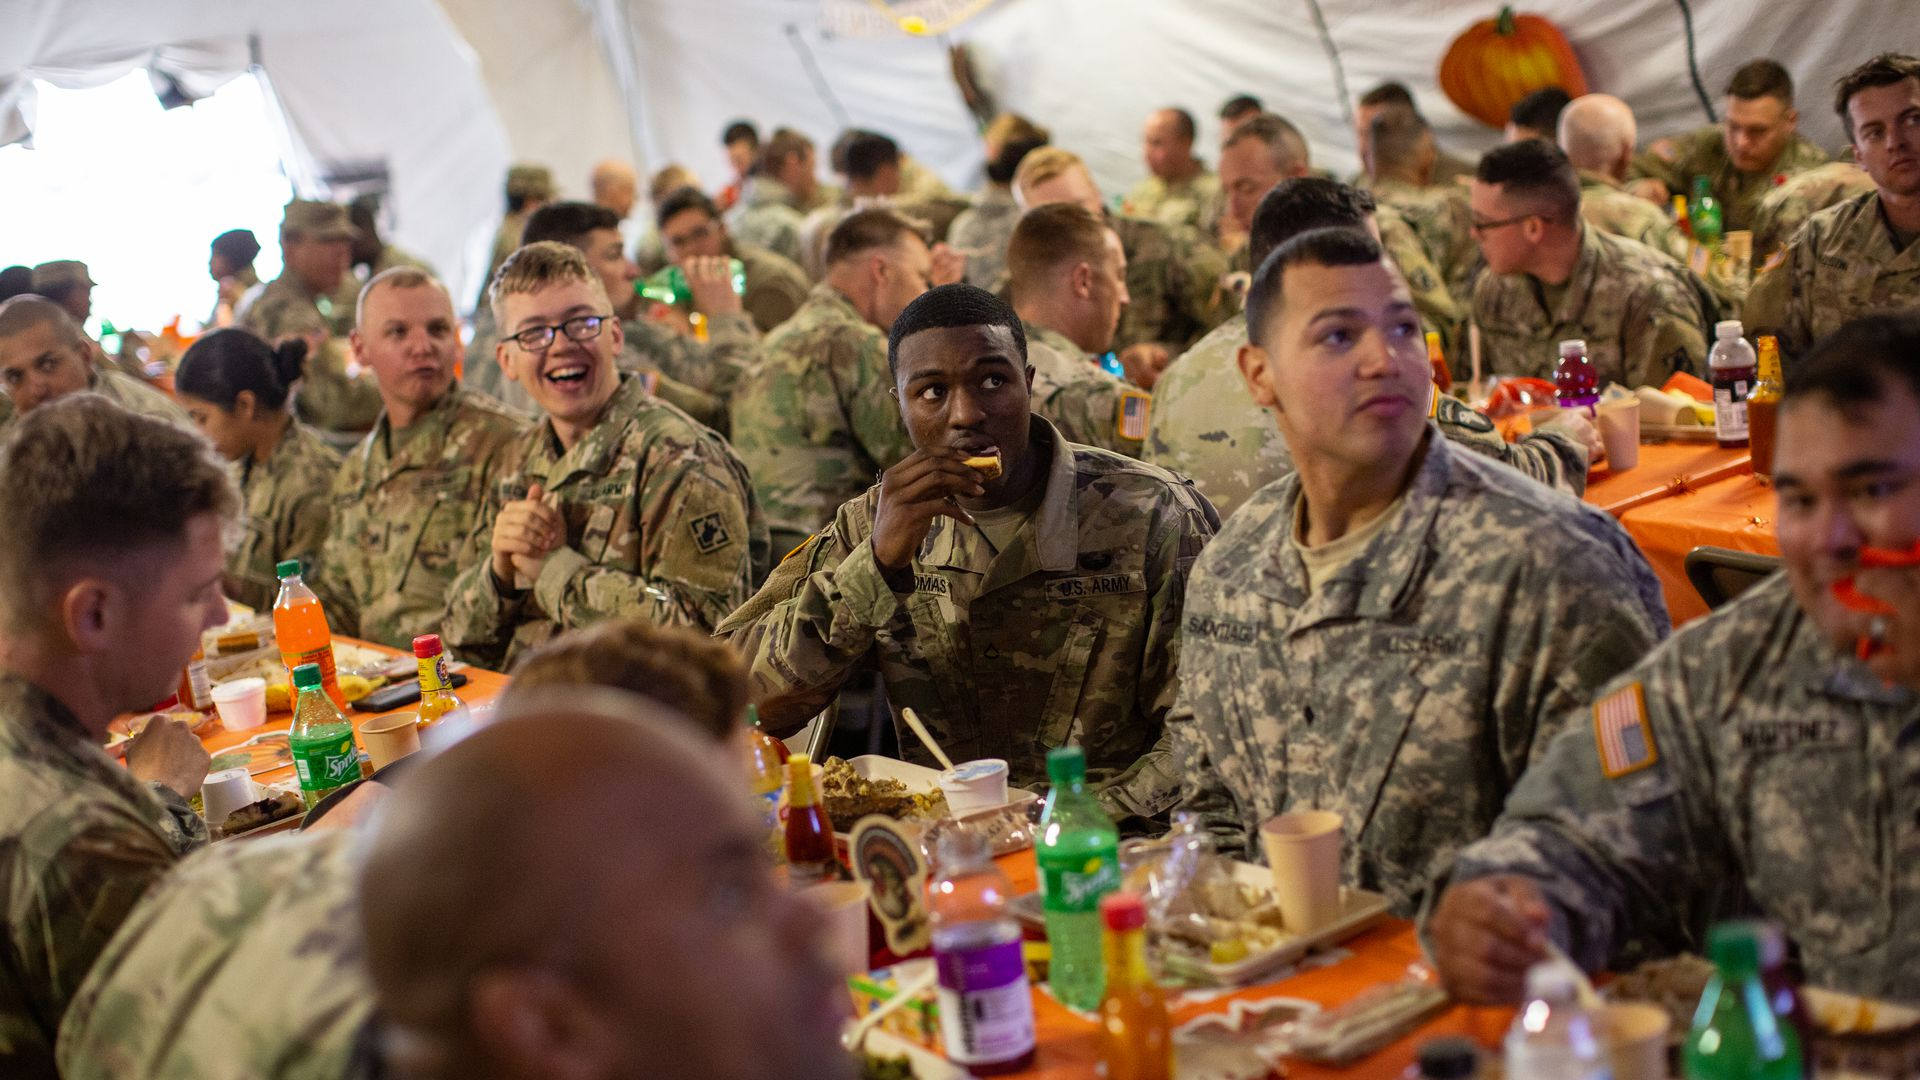 Troops eat Thanksgiving meal at southern border.